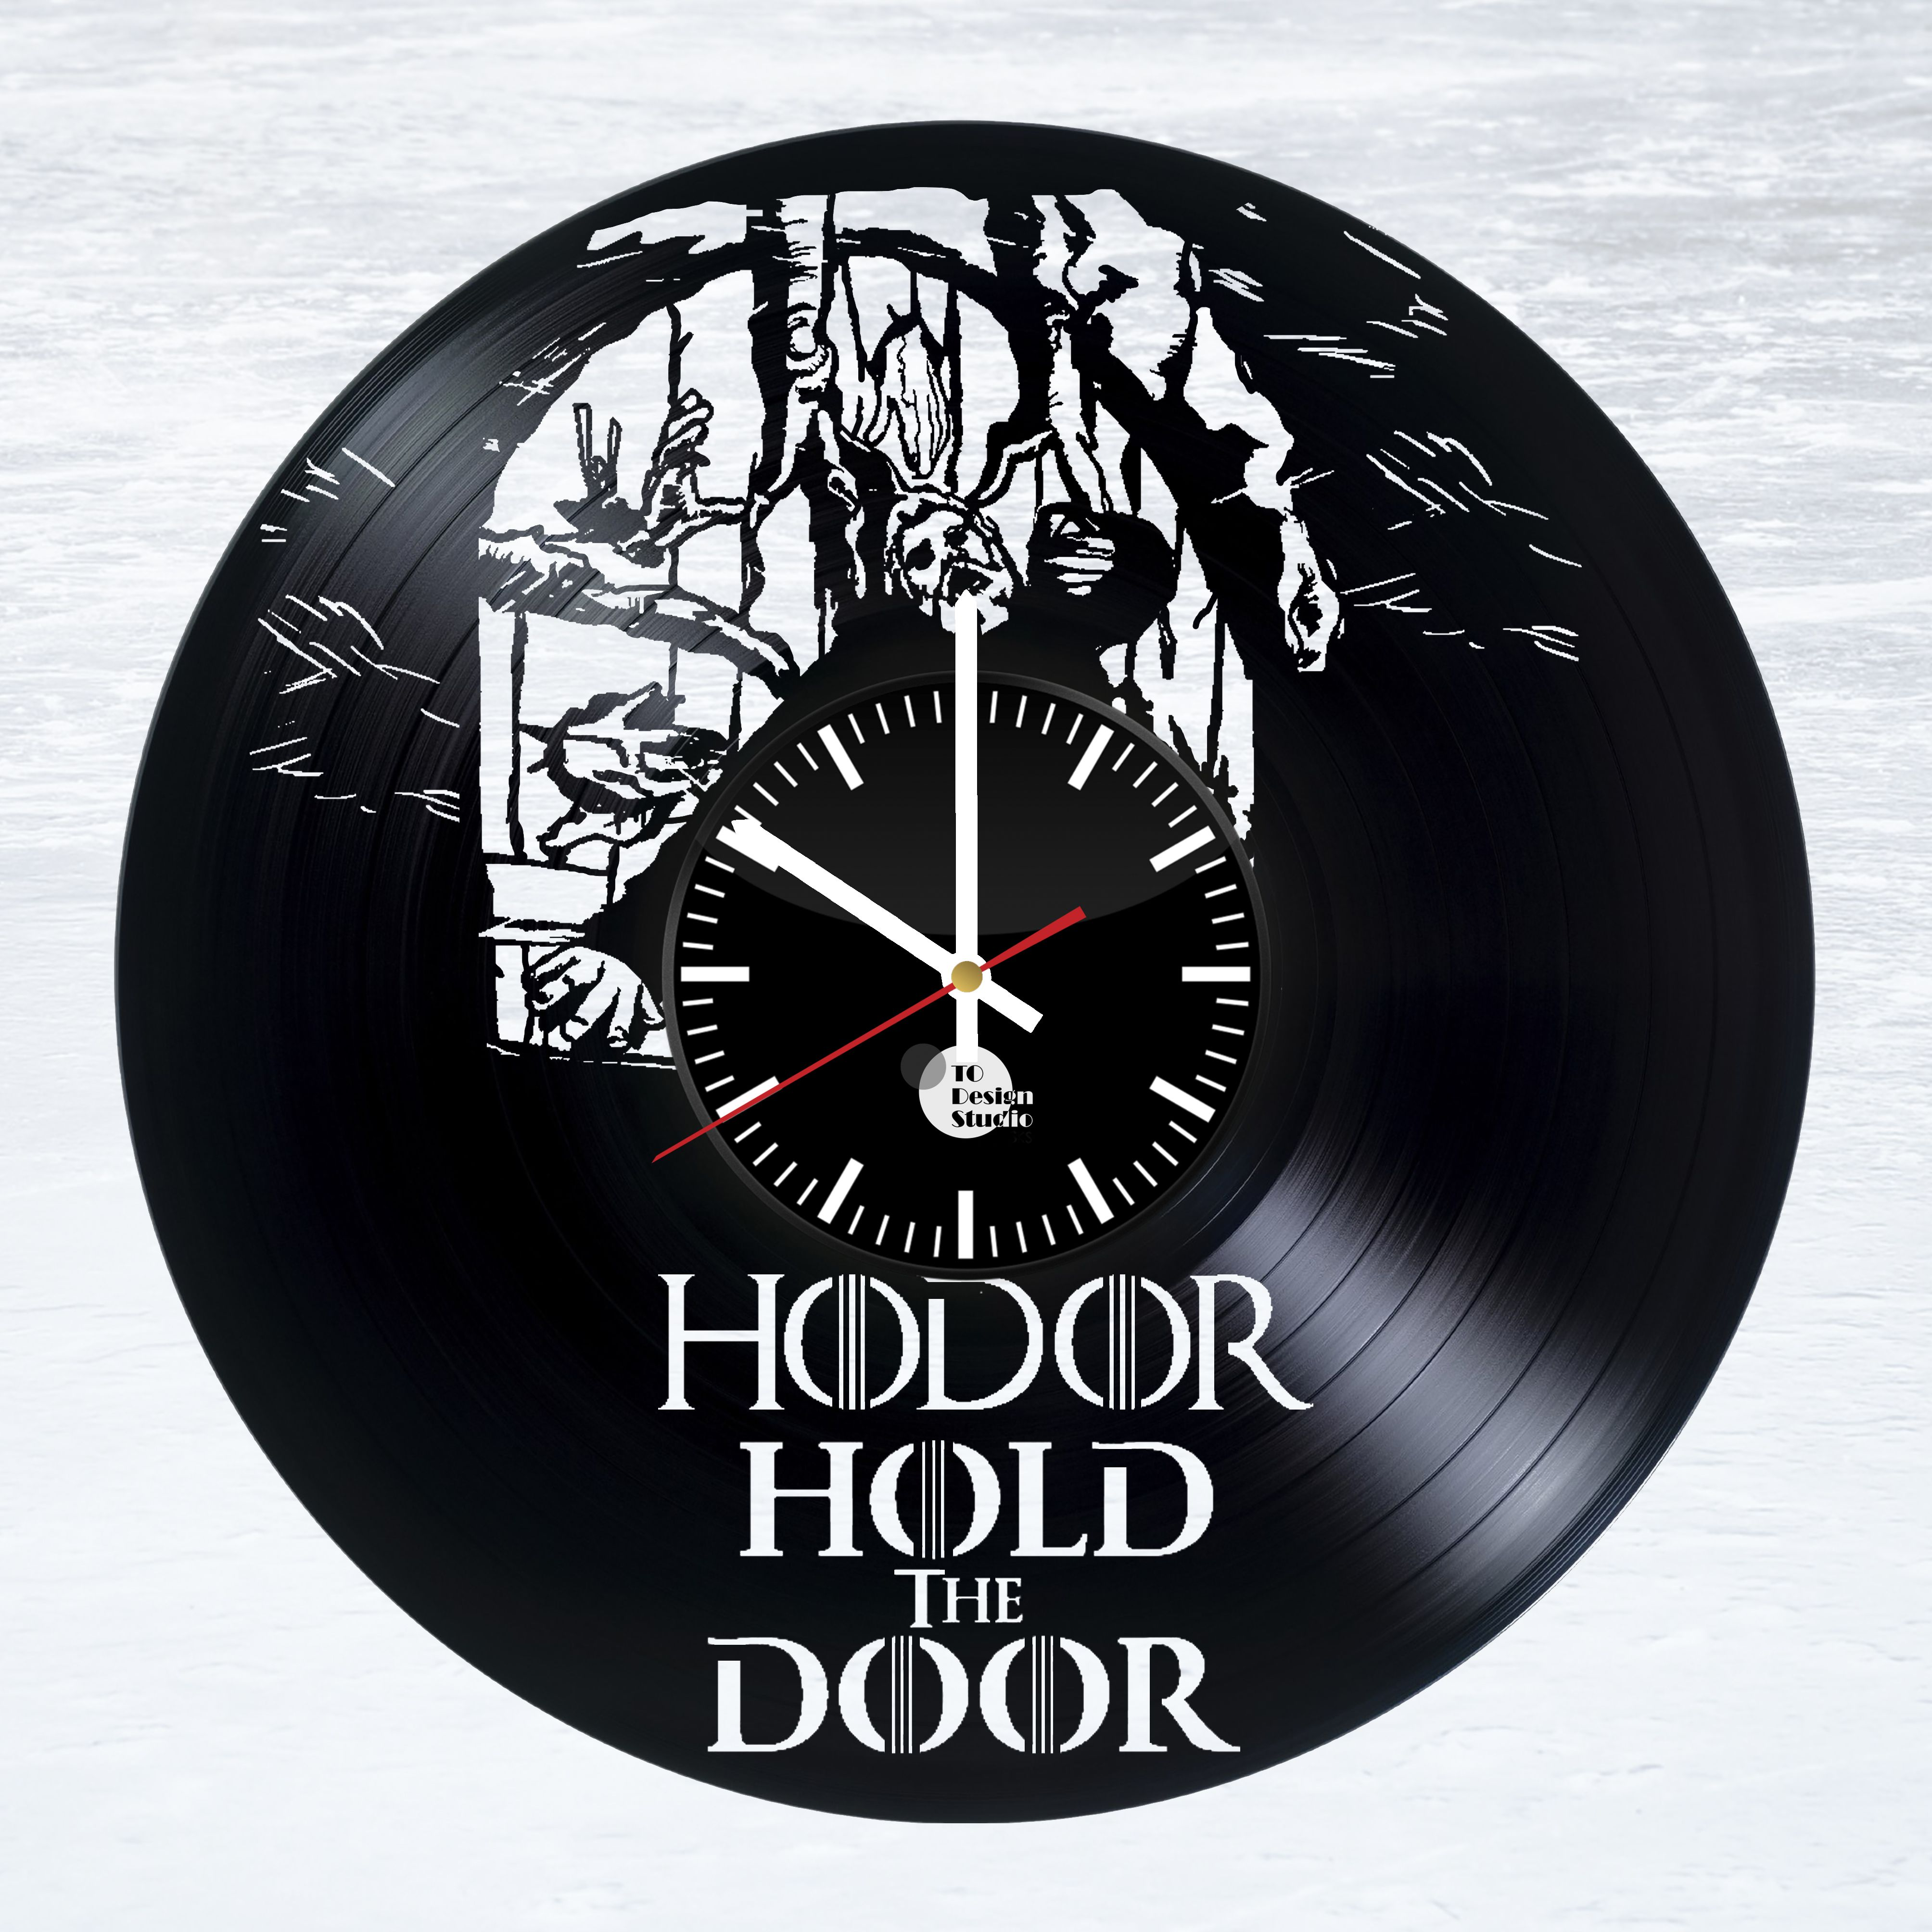 Pin by Julie Clarke on game of thrones Wall clock